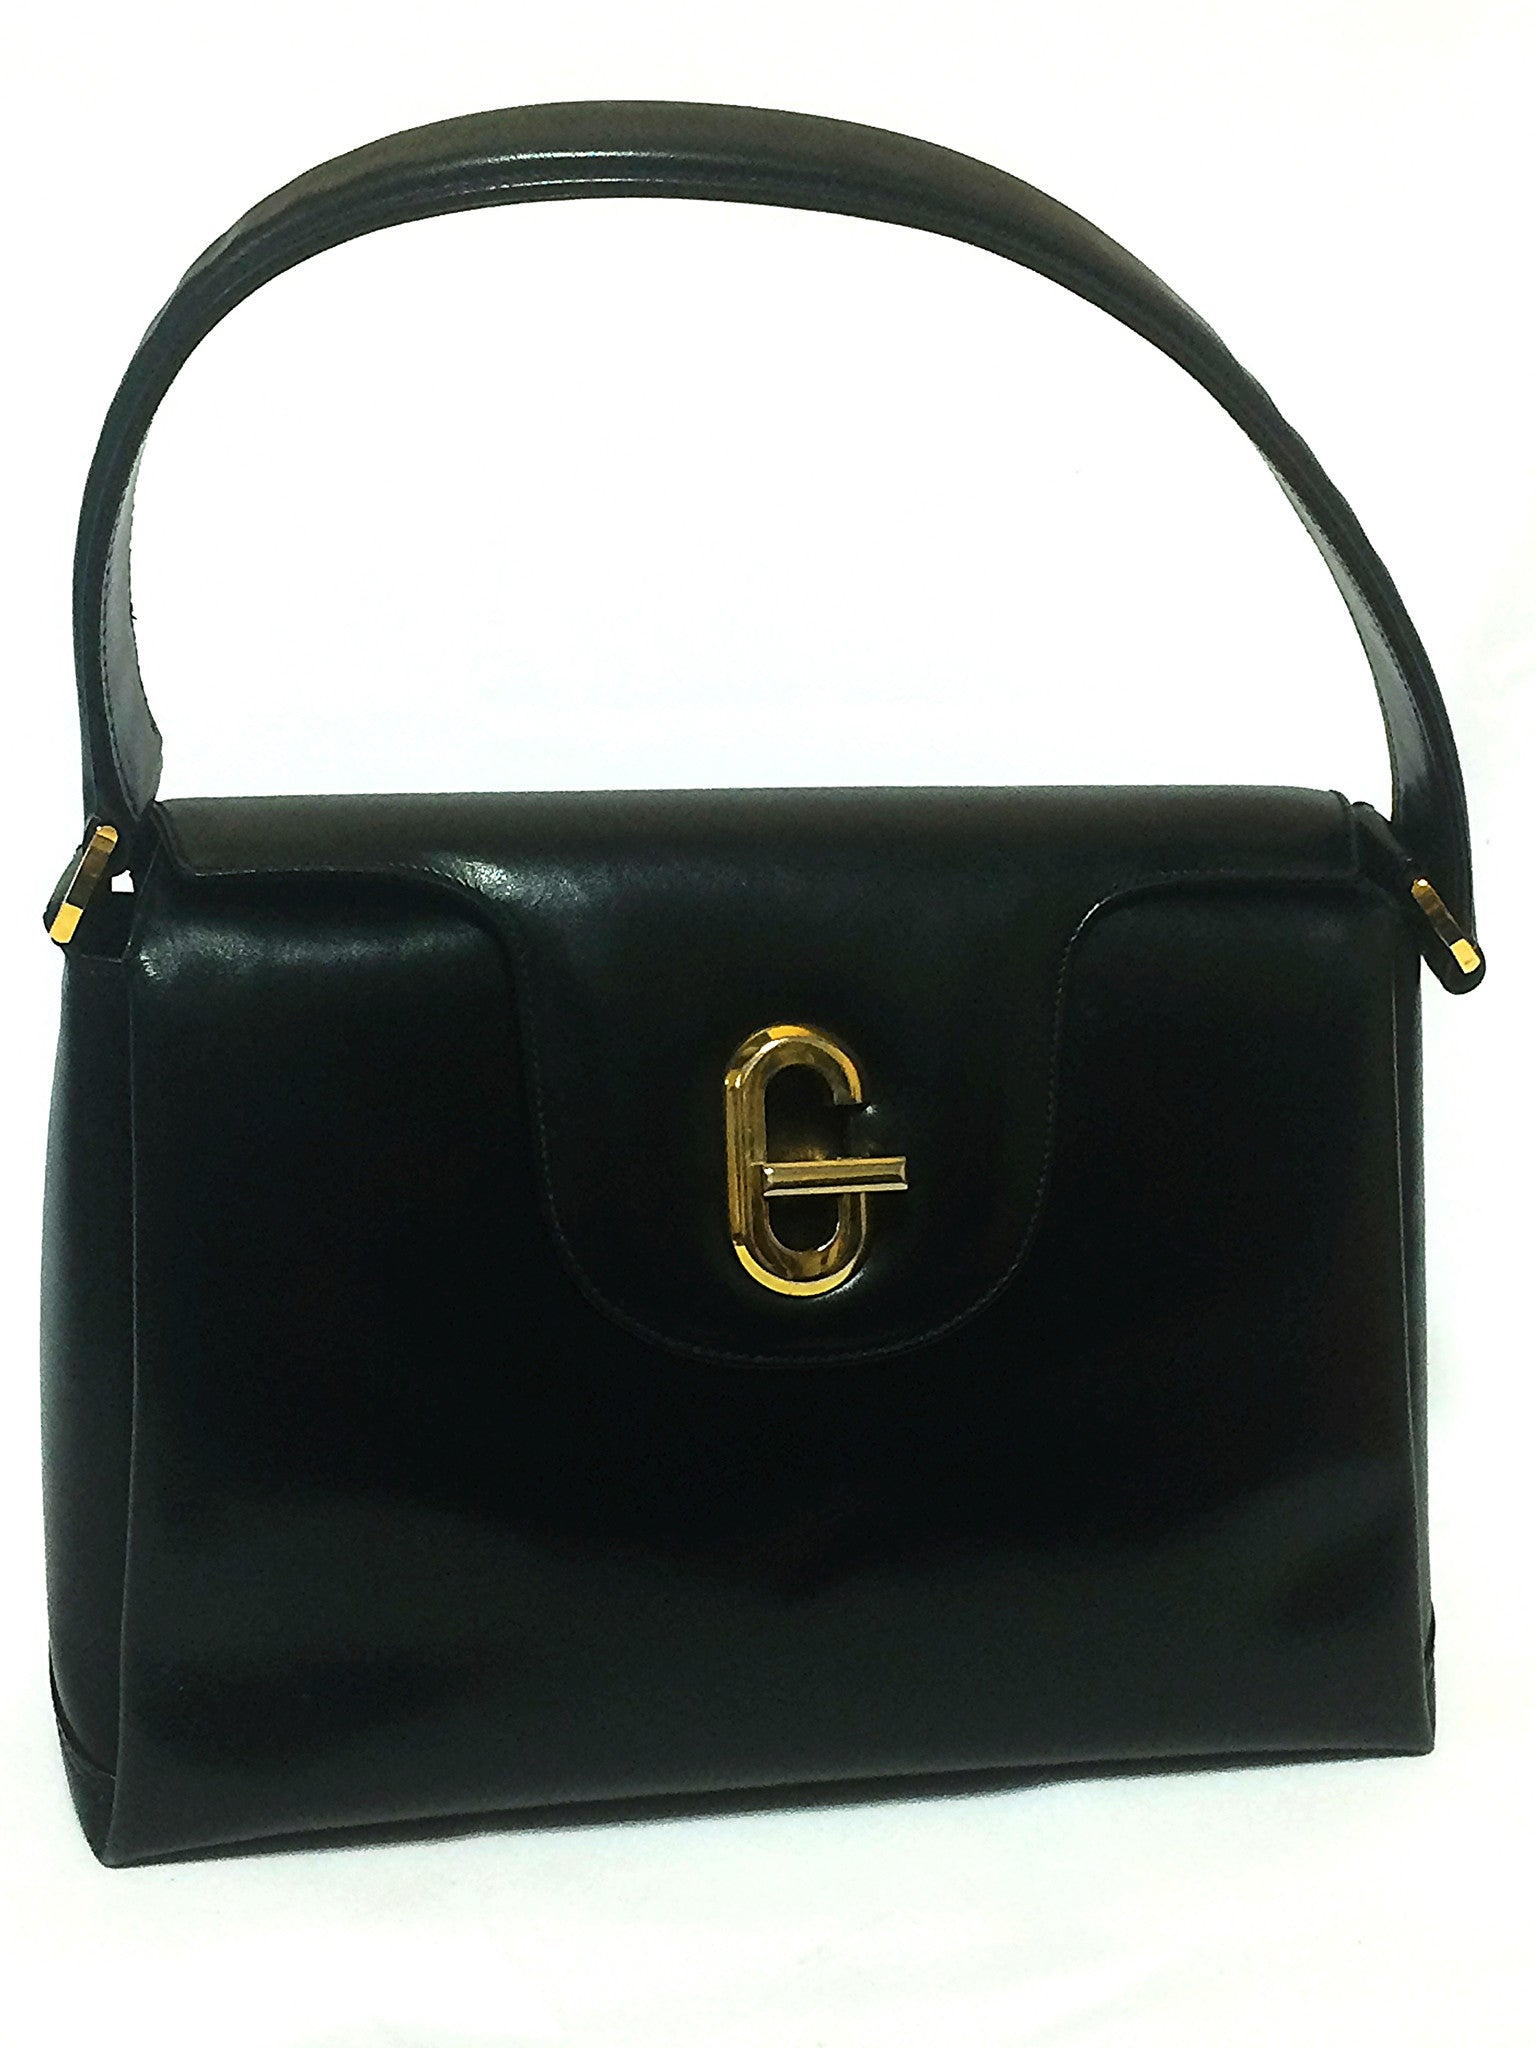 2eb67b0dcb9030 Vintage Gucci black leather classic design handbag purse with G hardware  turnlock closure and red interior